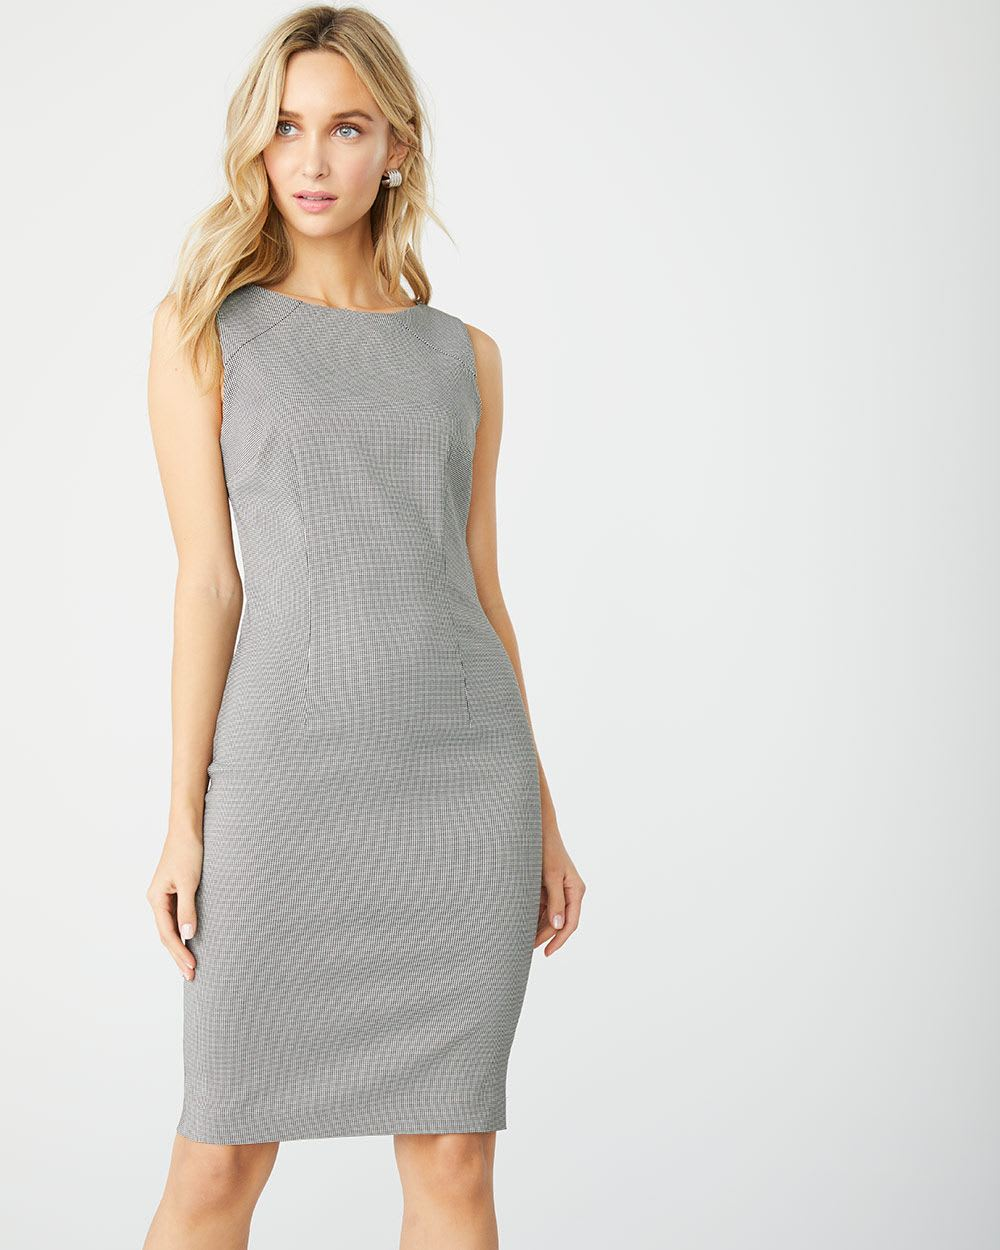 910ffb545d6 Fitted mini houndstooth City dress